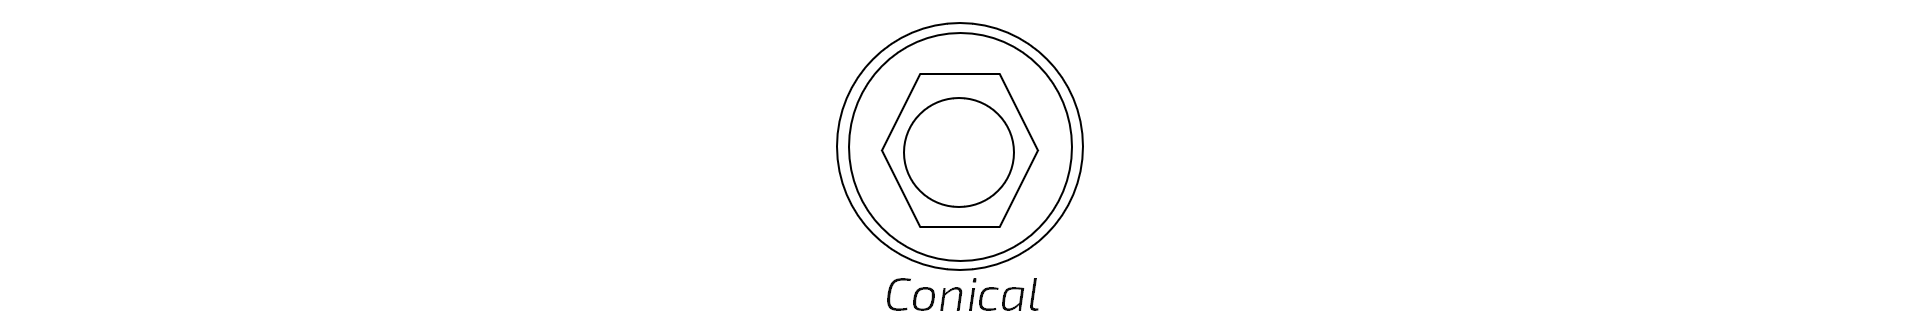 Conical Hex